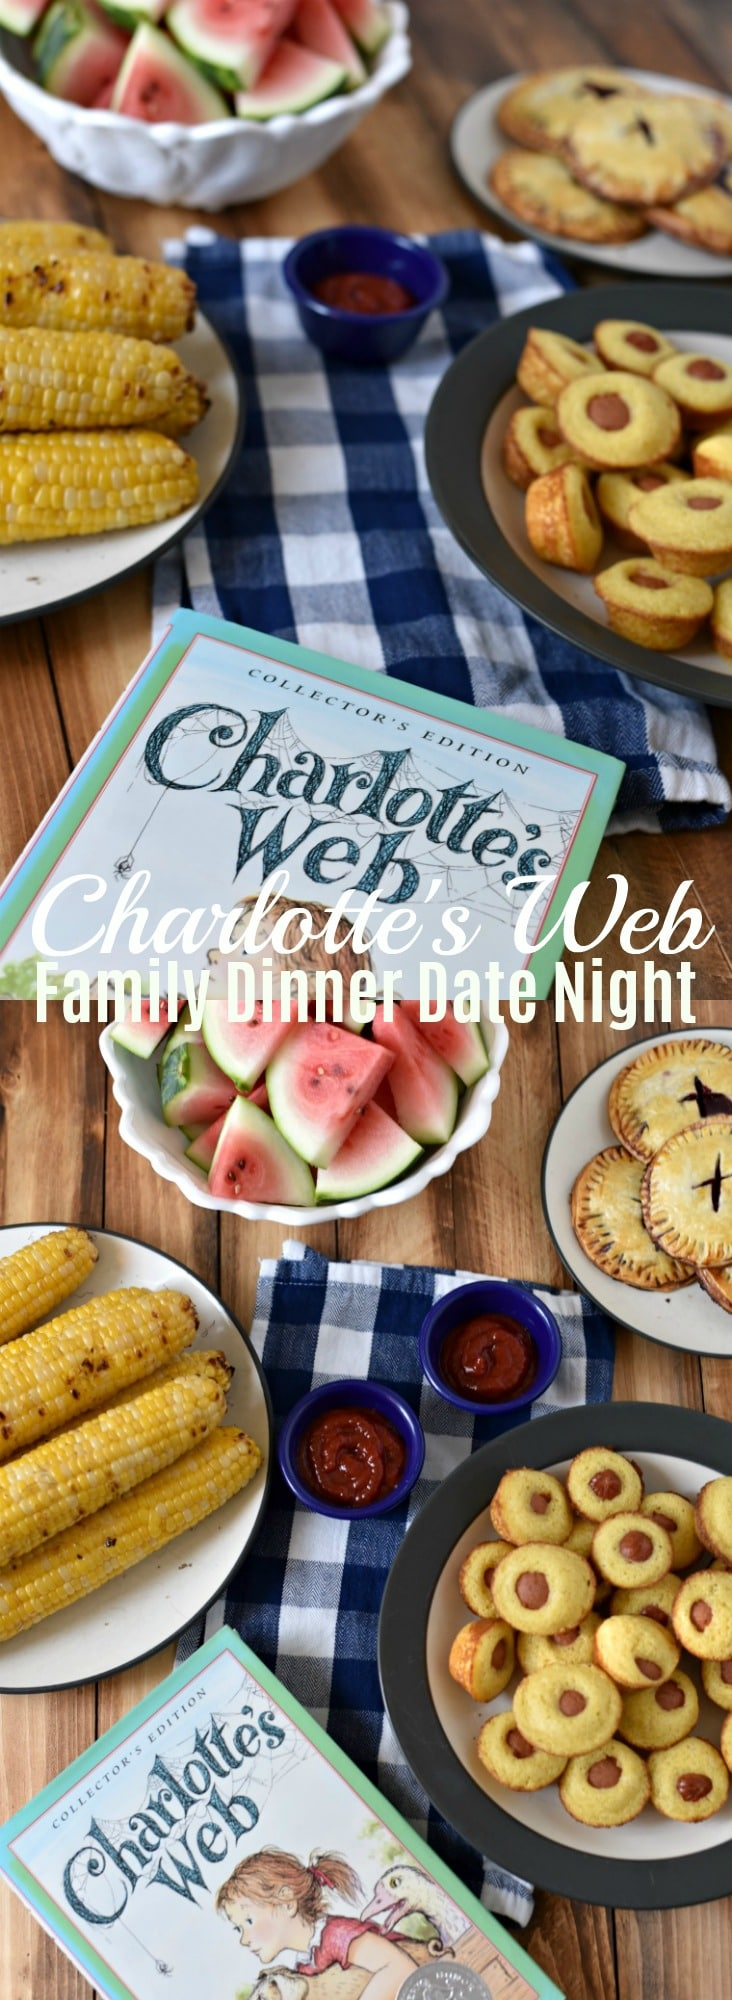 Aimed at quality time with your family - reading books, cooking & baking together, & then watching a movie. Charlotte's Web themed dinner & dessert.